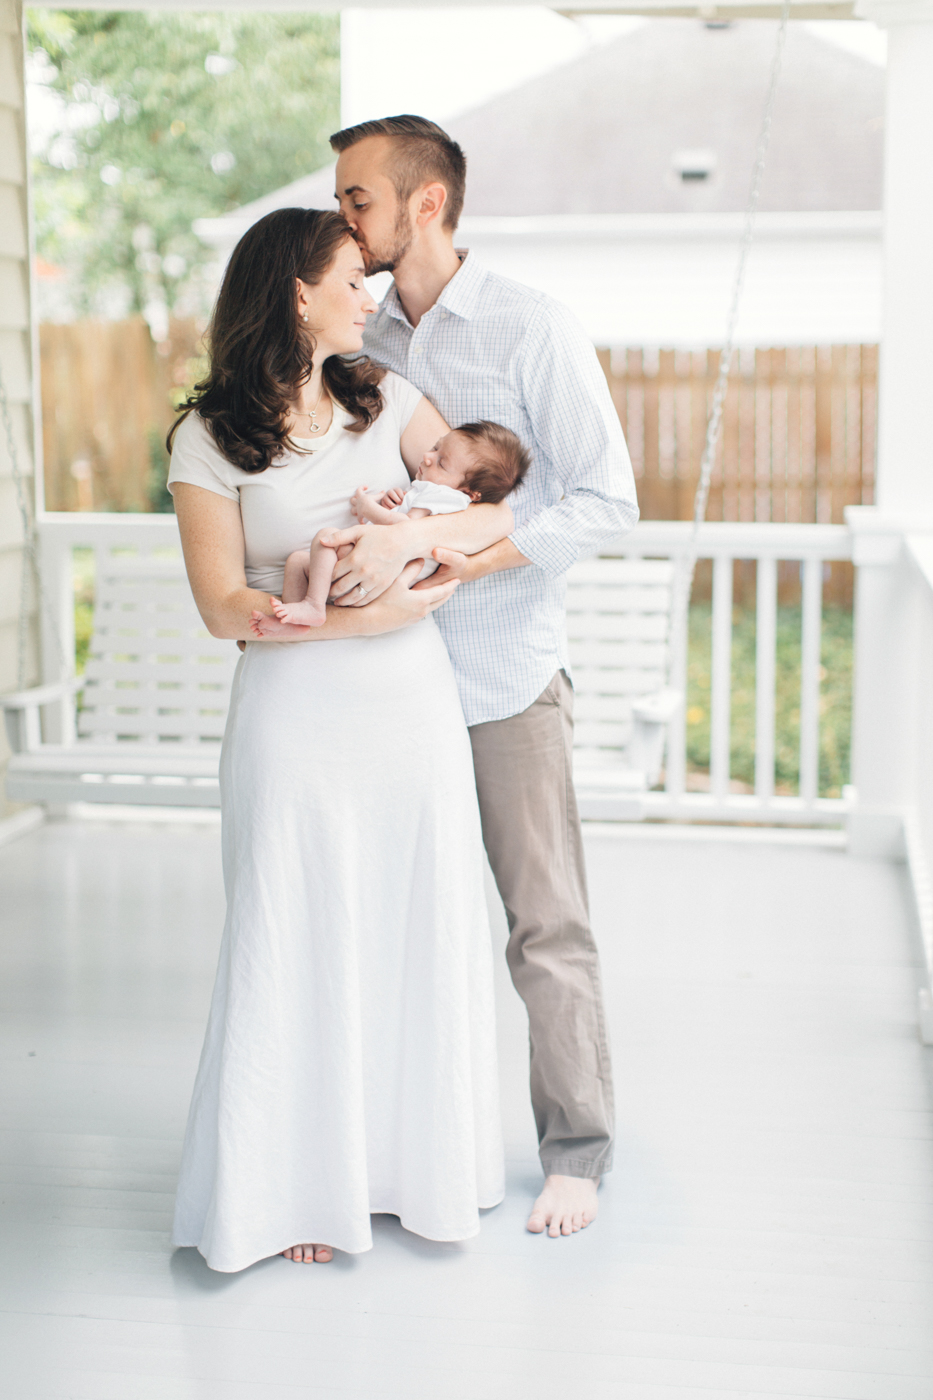 Four Corners Photography Atlanta Best Wedding Photographer Atlanta Best Newborn Photographer Atlanta Elopment Atlanta Maternity Photographer Wedding Photographer Southeast Fine Art Photography Atlanta Year in Review 2016-53